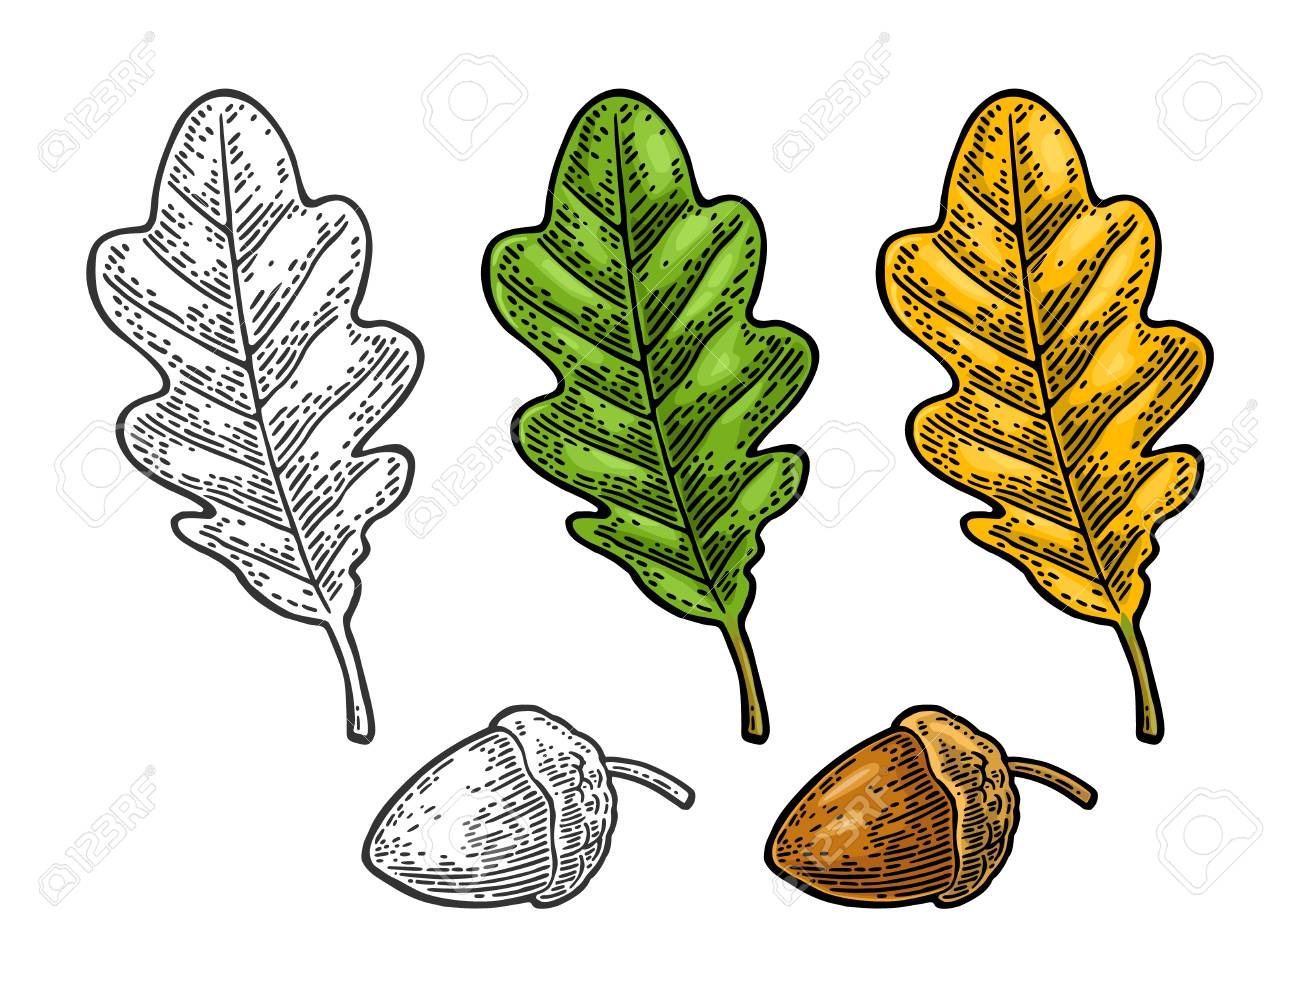 coloring pictures acorns | Only Coloring Pages | Coloring pages, Free  coloring pictures, Free coloring pages